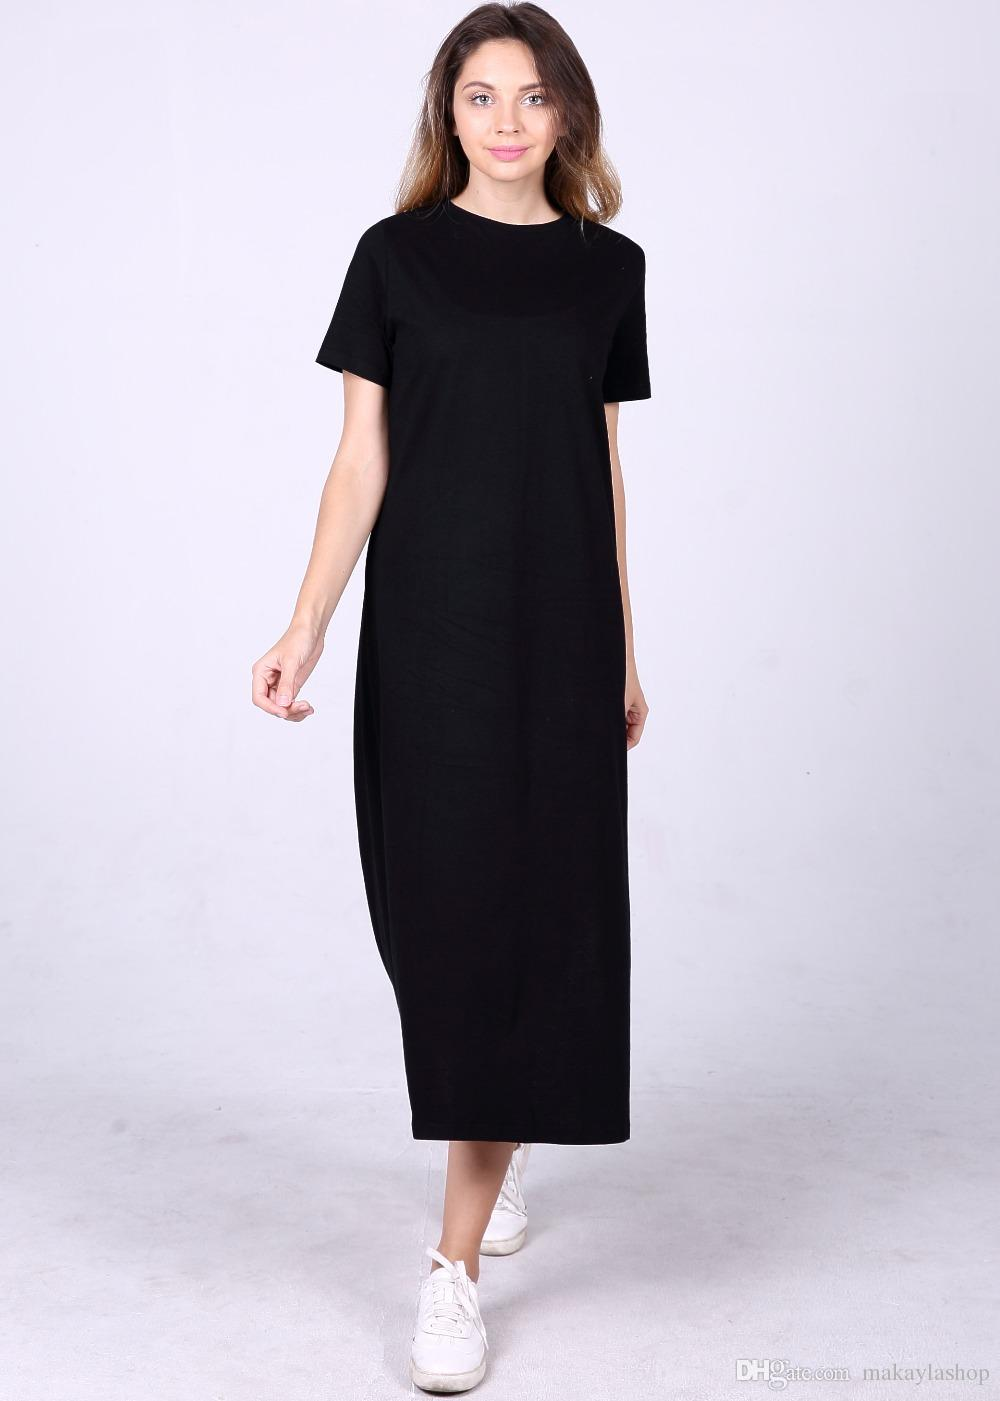 Casual Loose T Shirt Dress Summer Style Women Clothing High Split Straight  Midi Tunic Sarafan Beach Robe Day Dresses Dresses For Sale From  Makaylashop e28b20e036